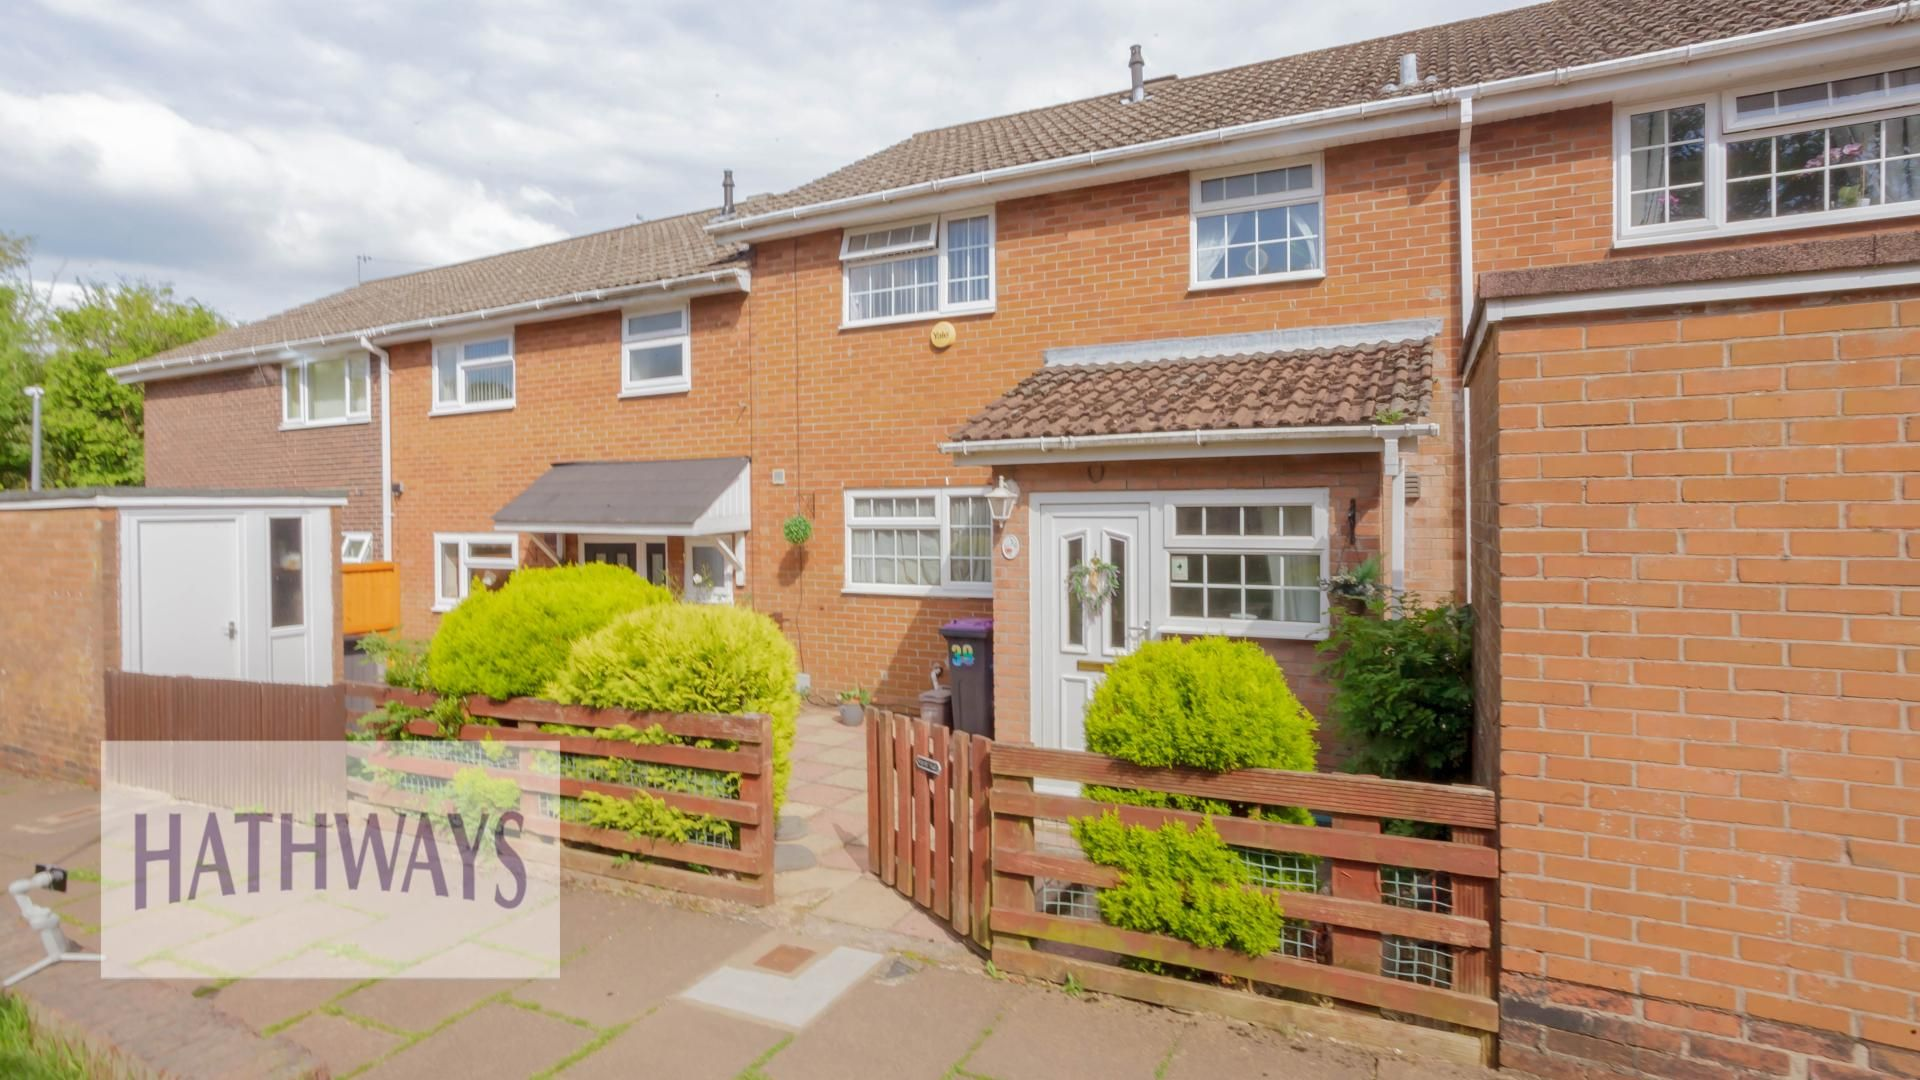 3 bed house for sale in Broome Path, NP44